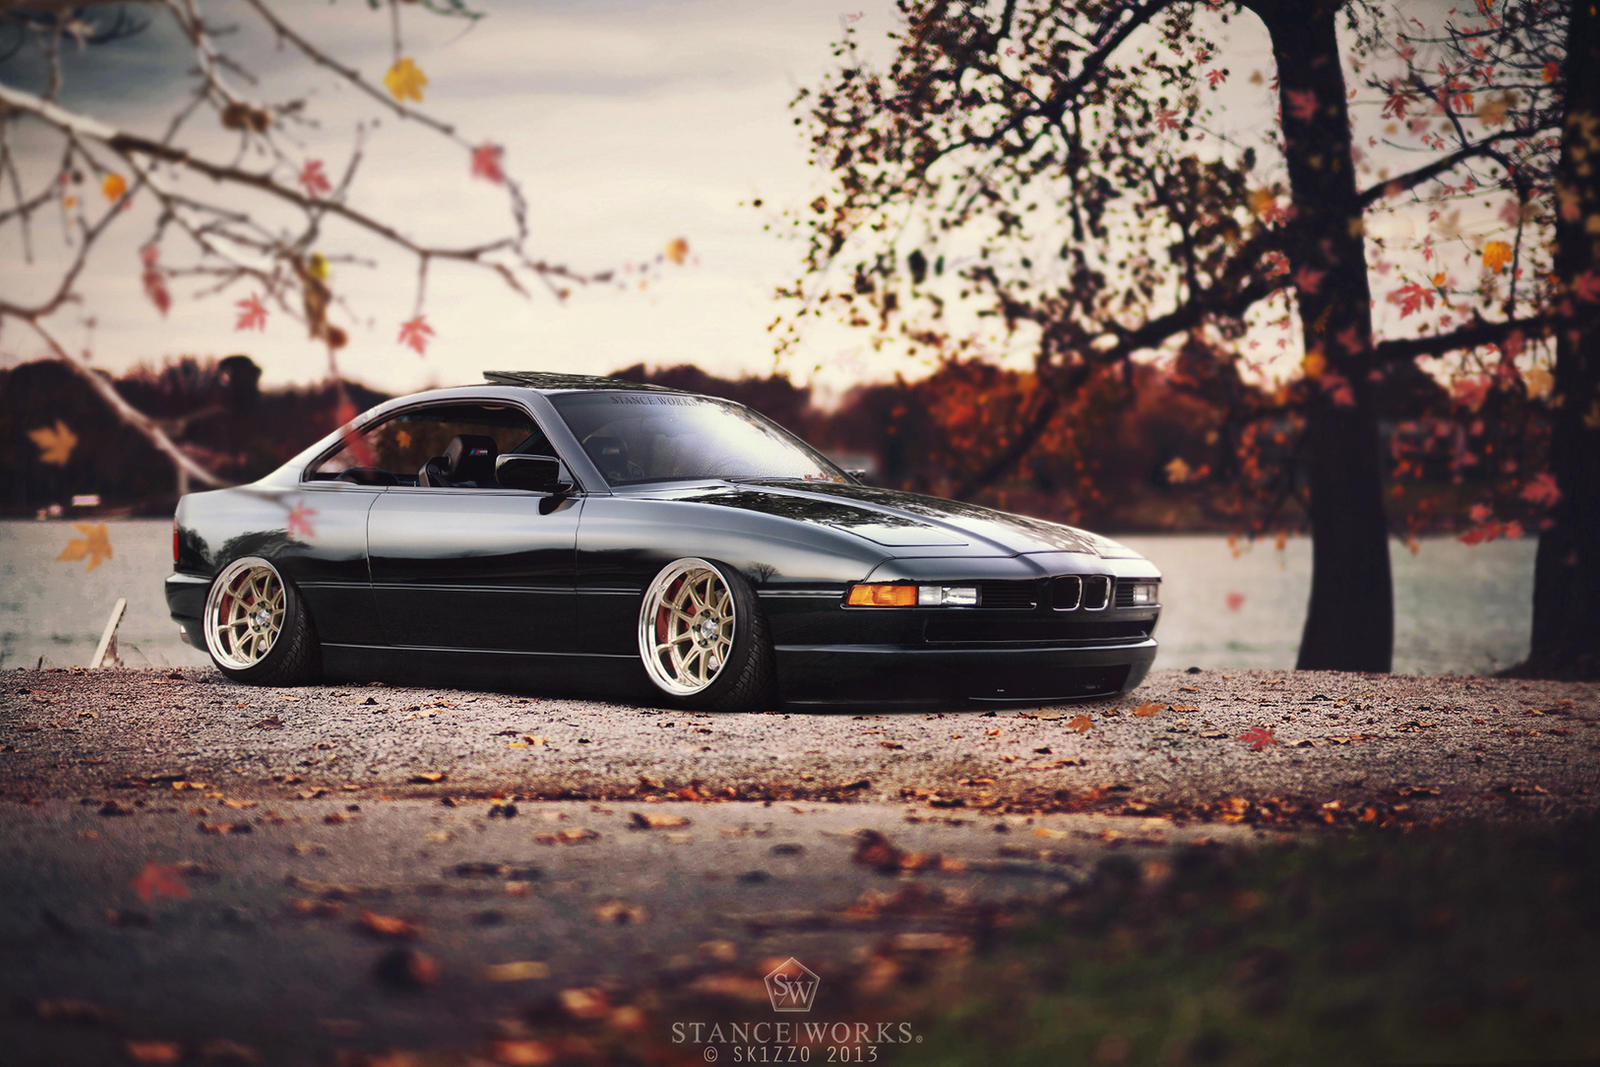 Stanced Bmw 850i By Sk1zzo On Deviantart